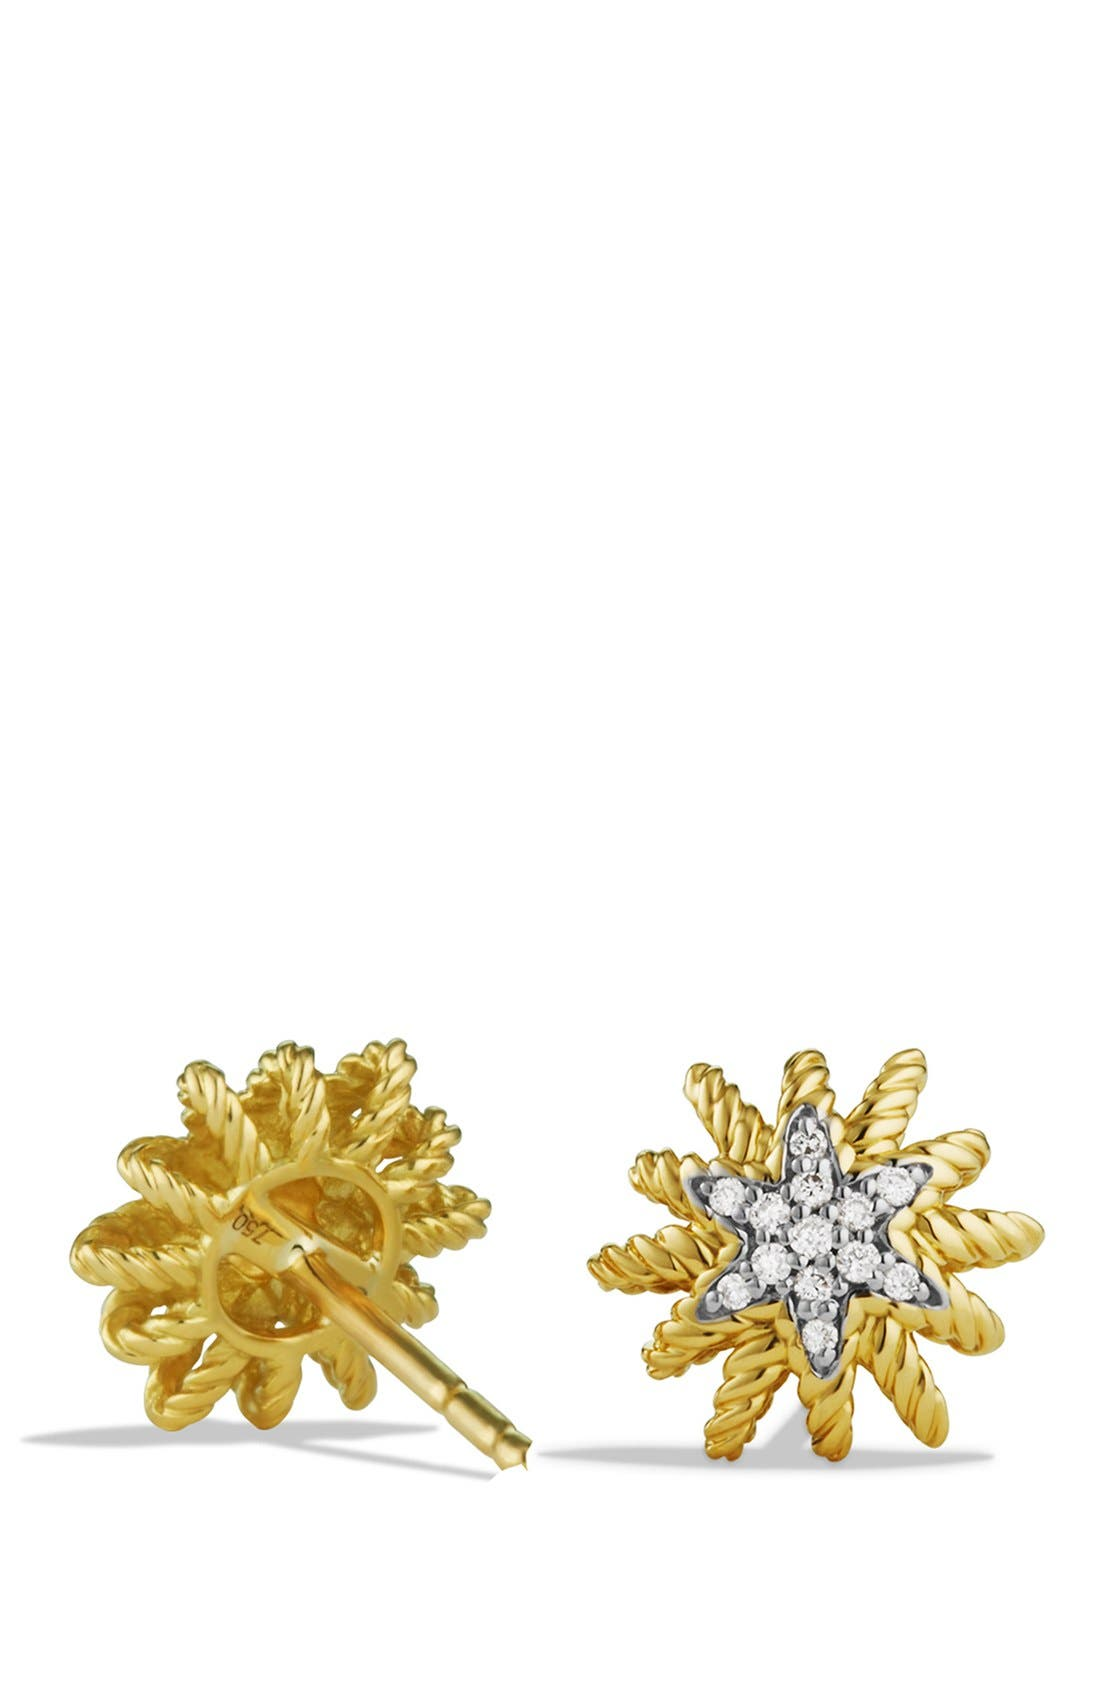 Alternate Image 2  - David Yurman 'Starburst' Mini Earrings with Diamonds in Gold